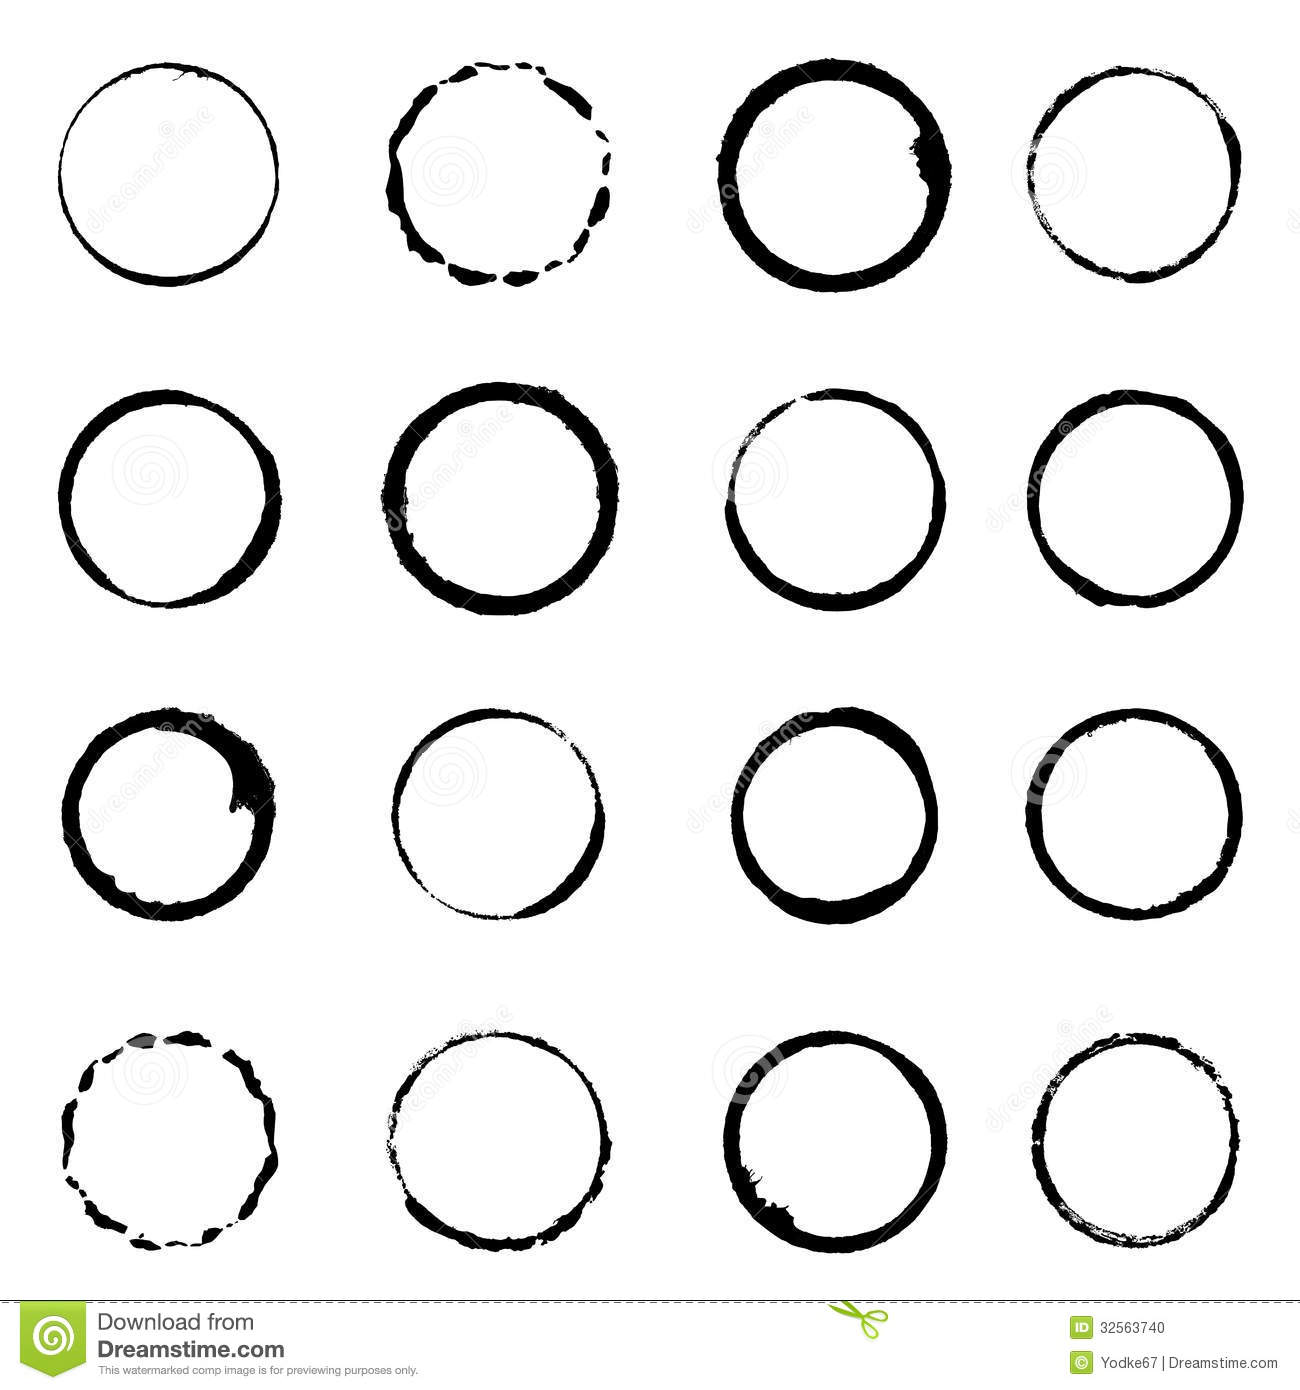 Display Cube Qed Single Tier Alloy Frame Glass Shelf further File Descriptive Zoopraxography Buffalo Galloping Animated 13 further Stock Photo Vector Set Grunge Circle Brush Strokes Frames Image32563740 further EP0142363B1 further Frame Relay. on a frame